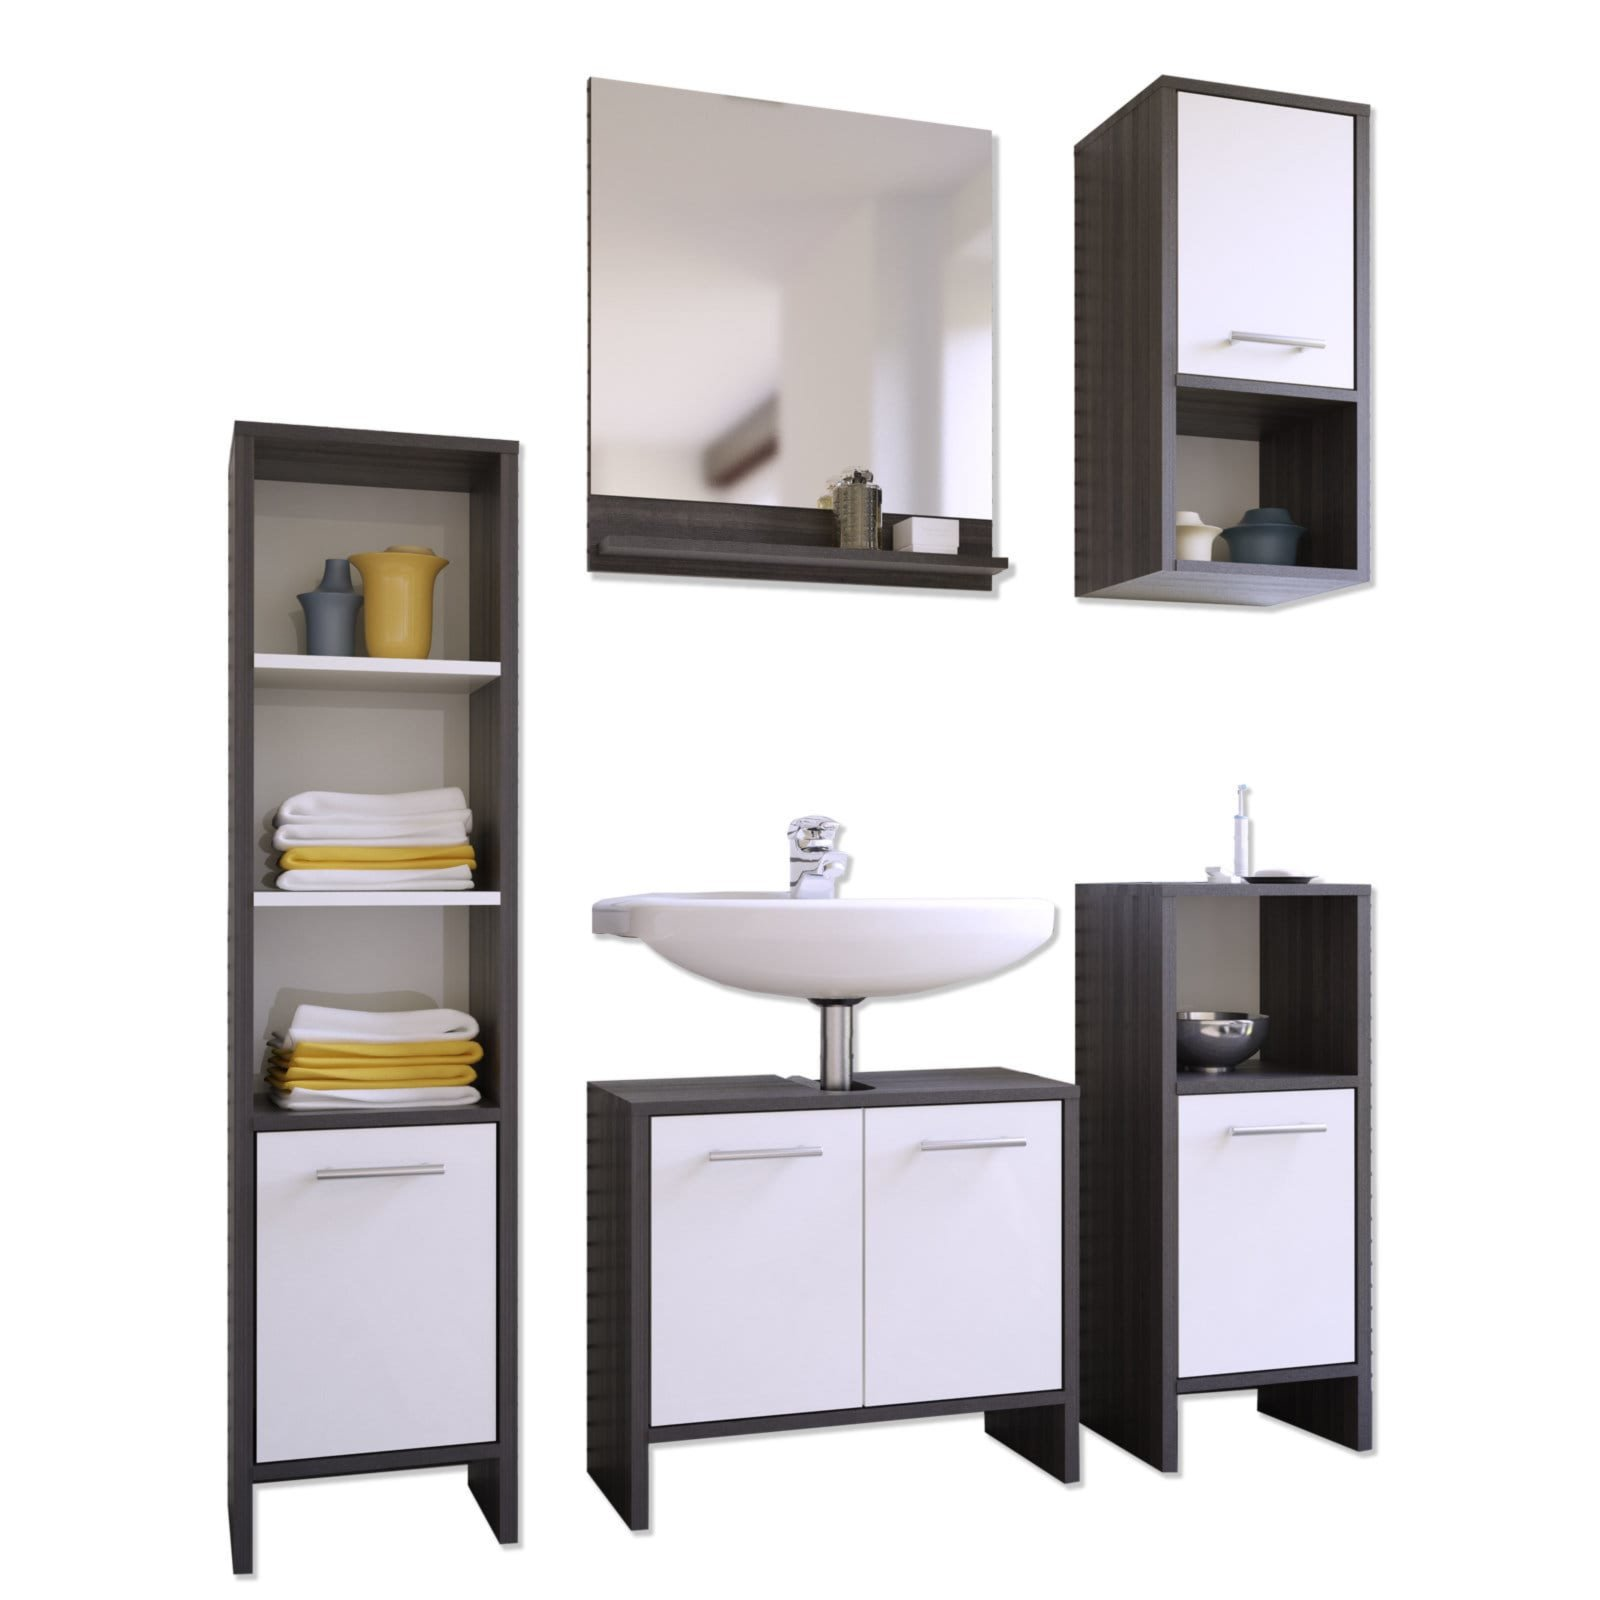 badm bel set g nstig kaufen. Black Bedroom Furniture Sets. Home Design Ideas